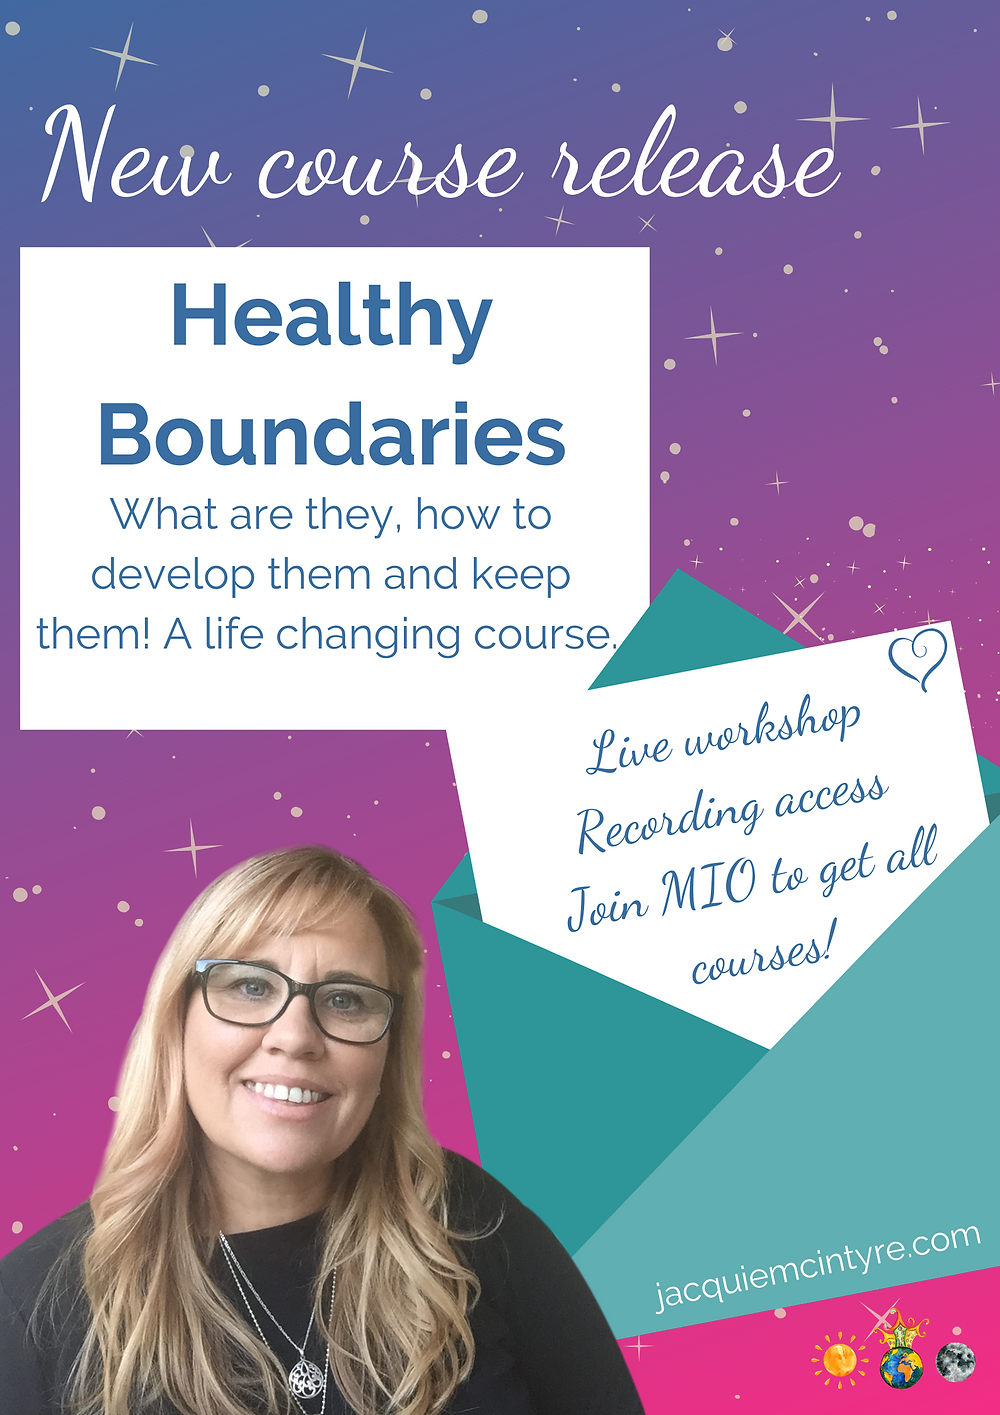 Healthy Boundaries with Jacquie